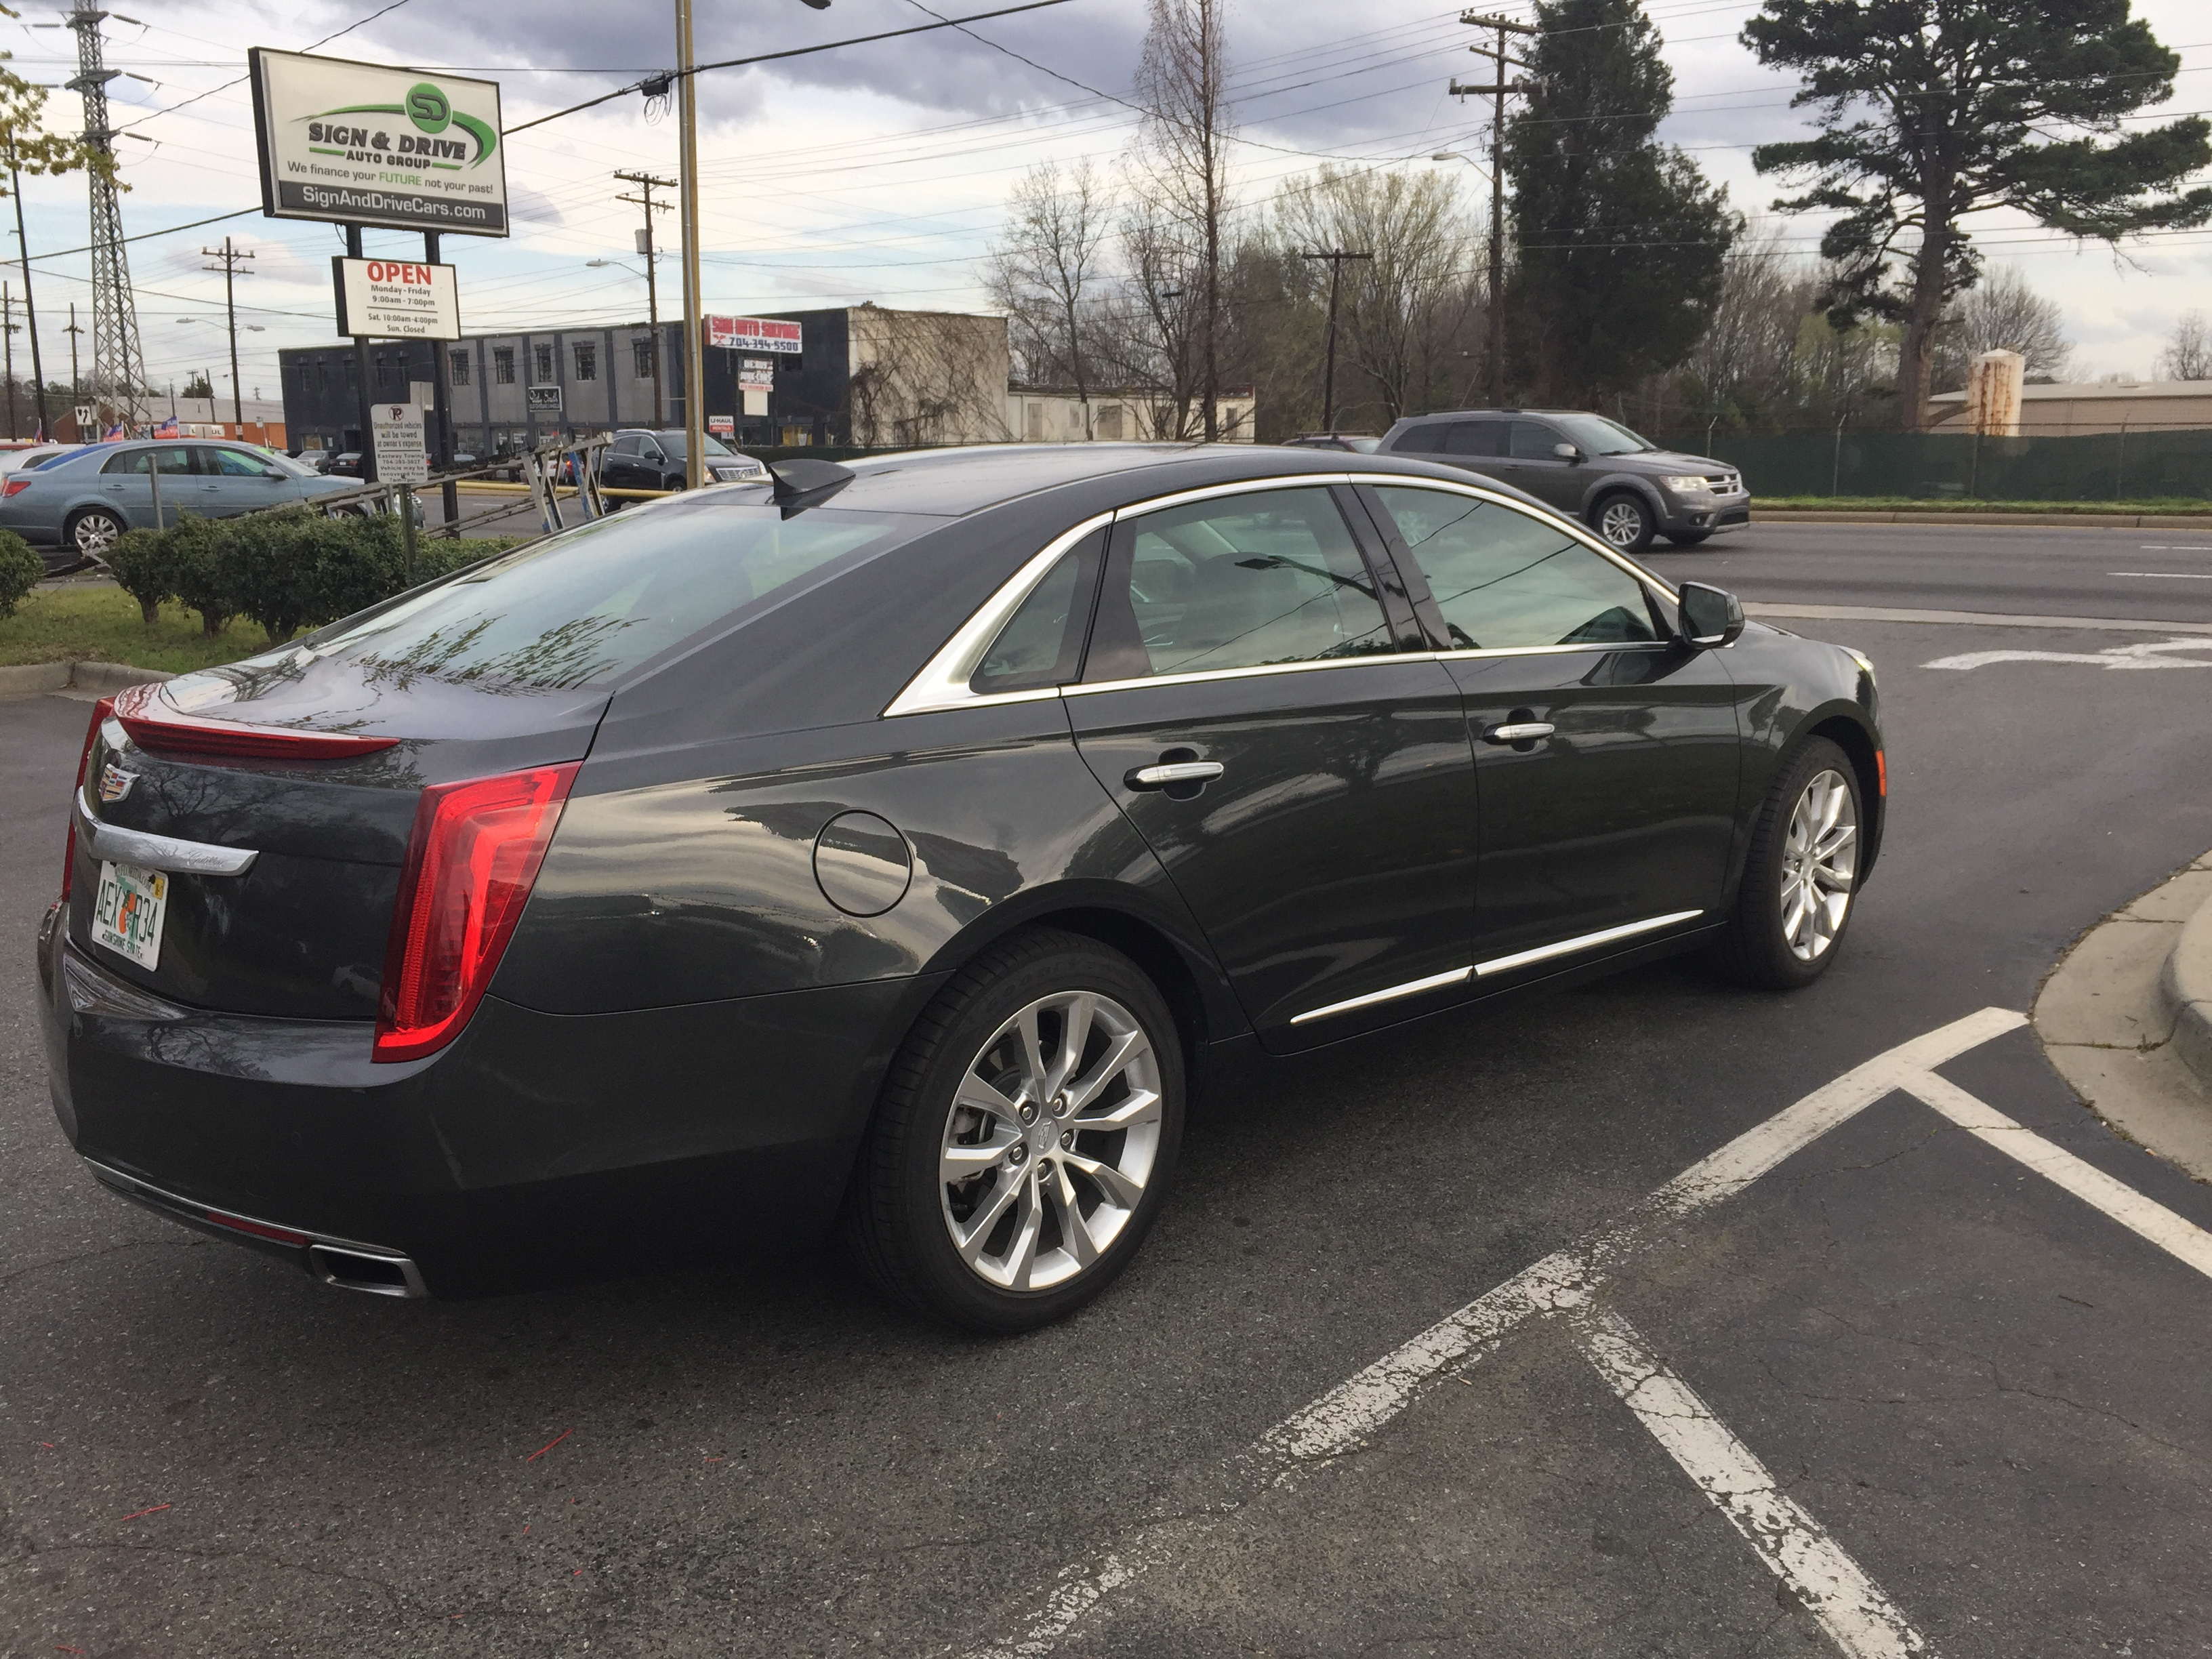 2017 cadillac xts rental review personal emerald aisle sedan the truth about cars. Black Bedroom Furniture Sets. Home Design Ideas